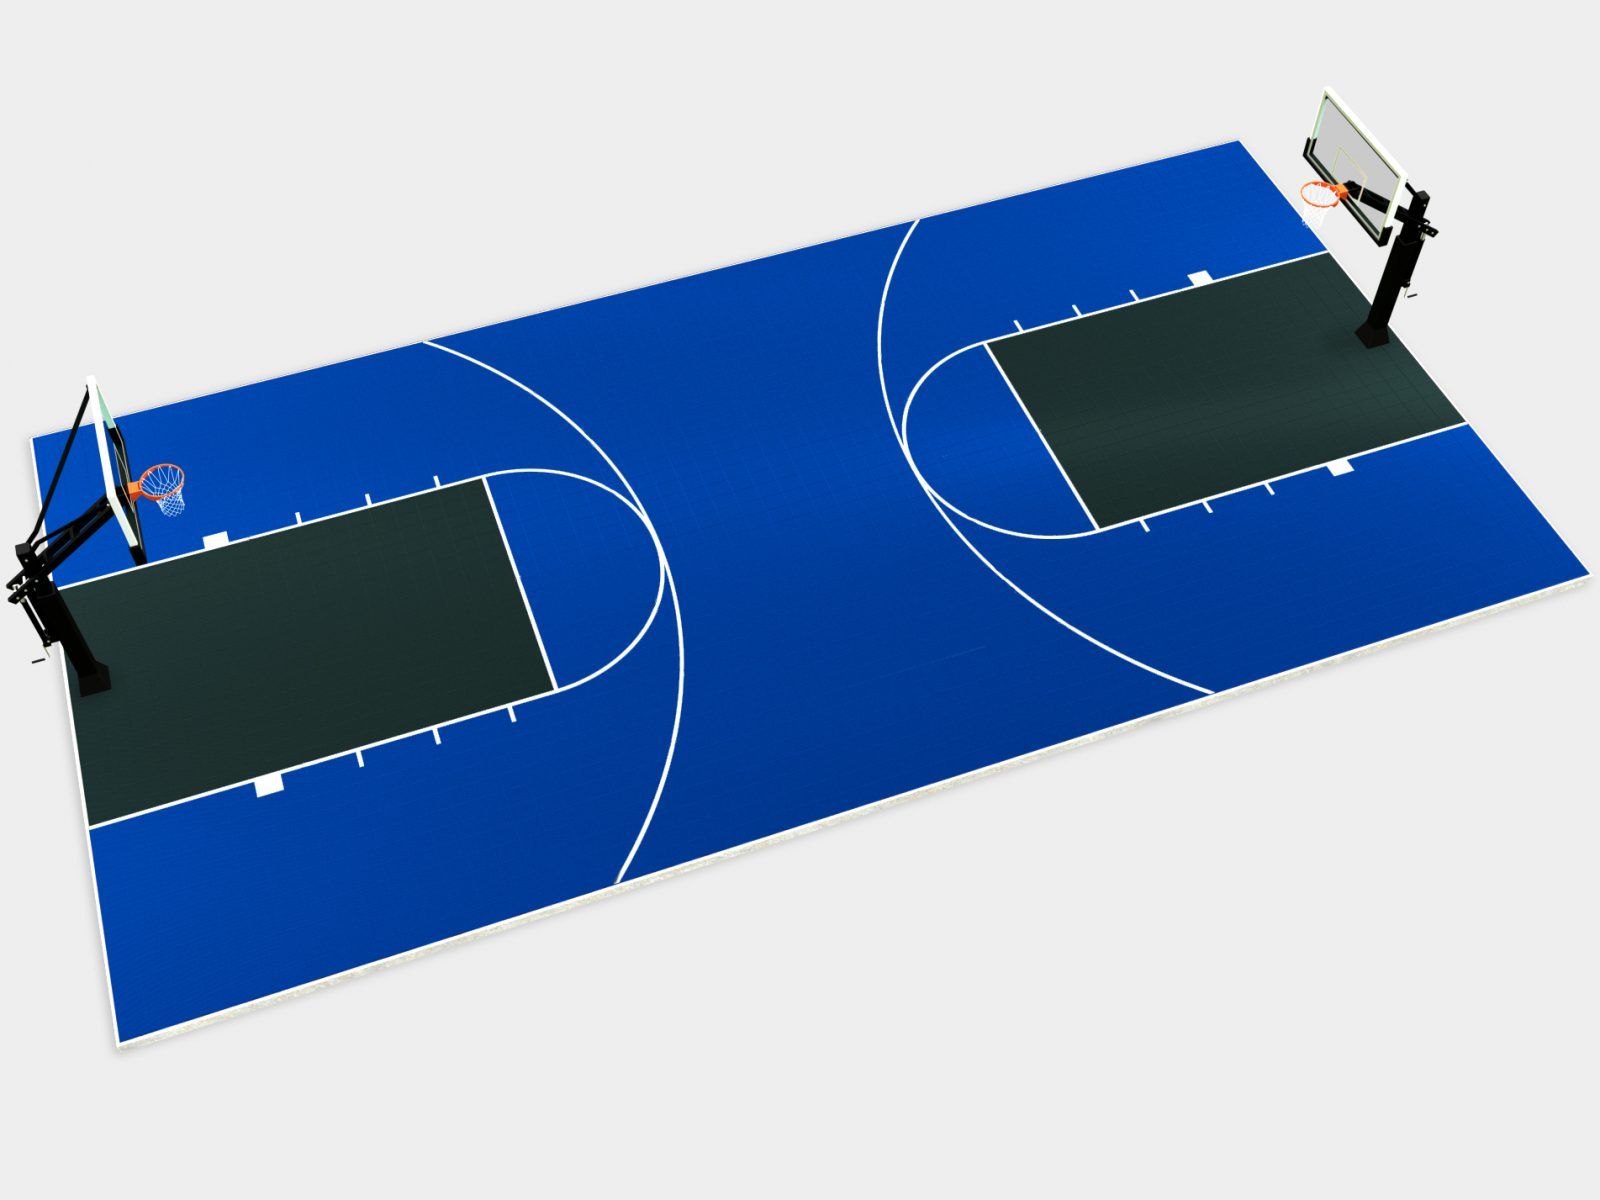 60' x 30' Basketball Full Court